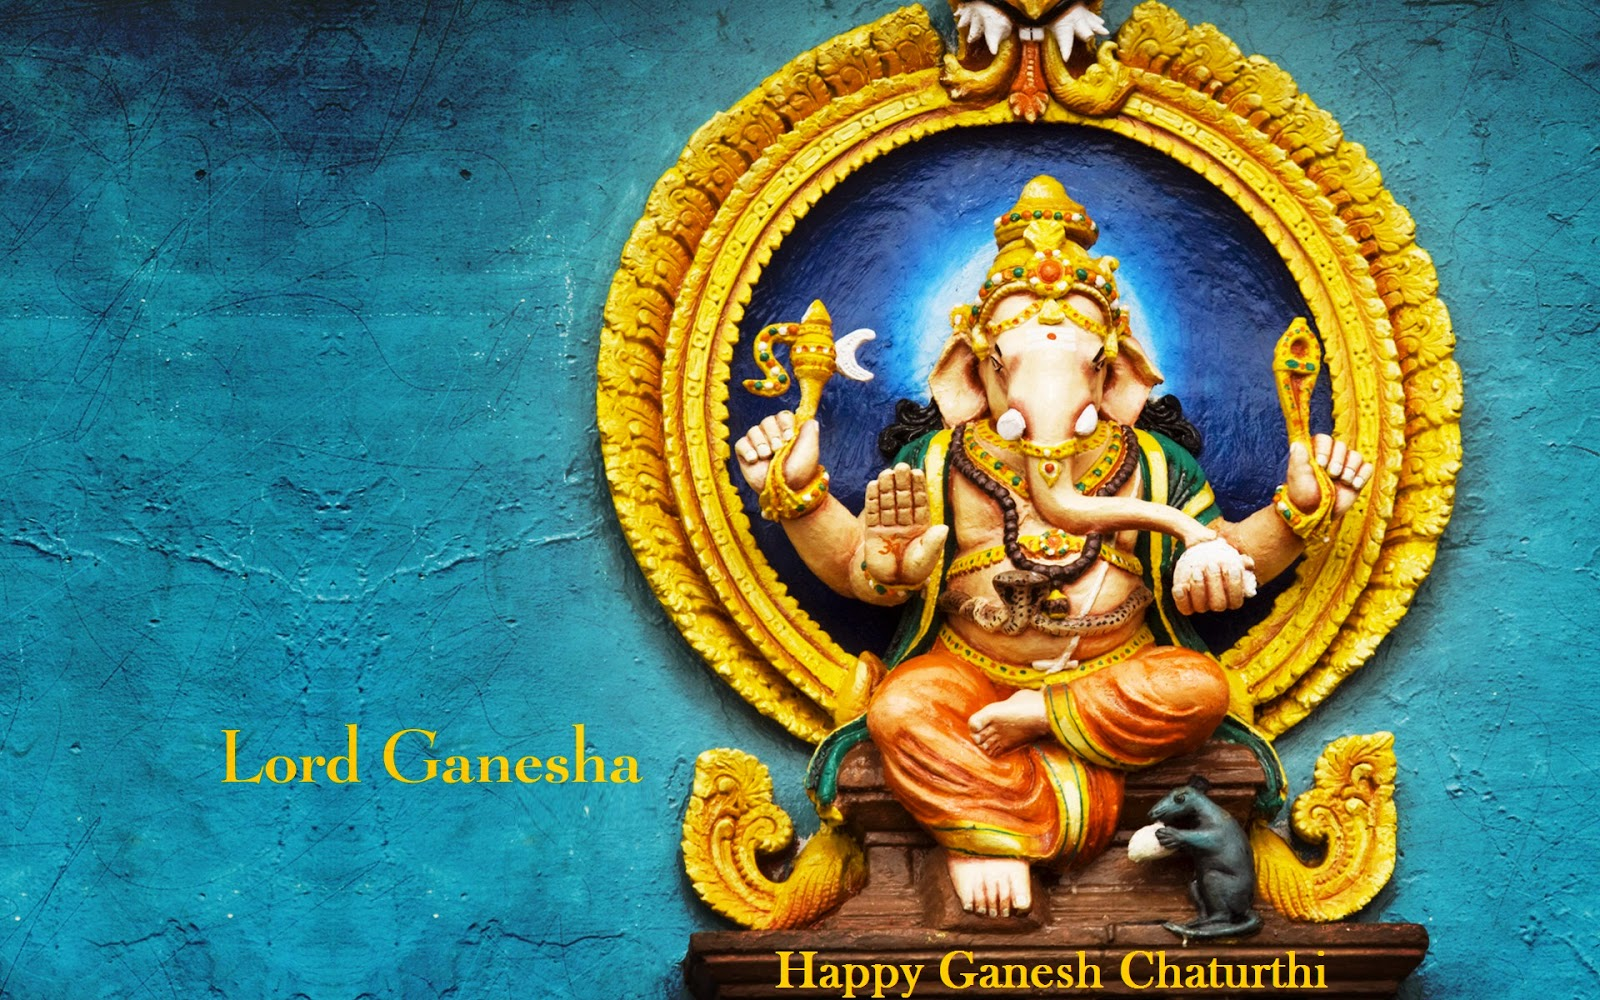 Hd wallpaper ganesh - Ganesh Chaturthi Images For Whatsapp